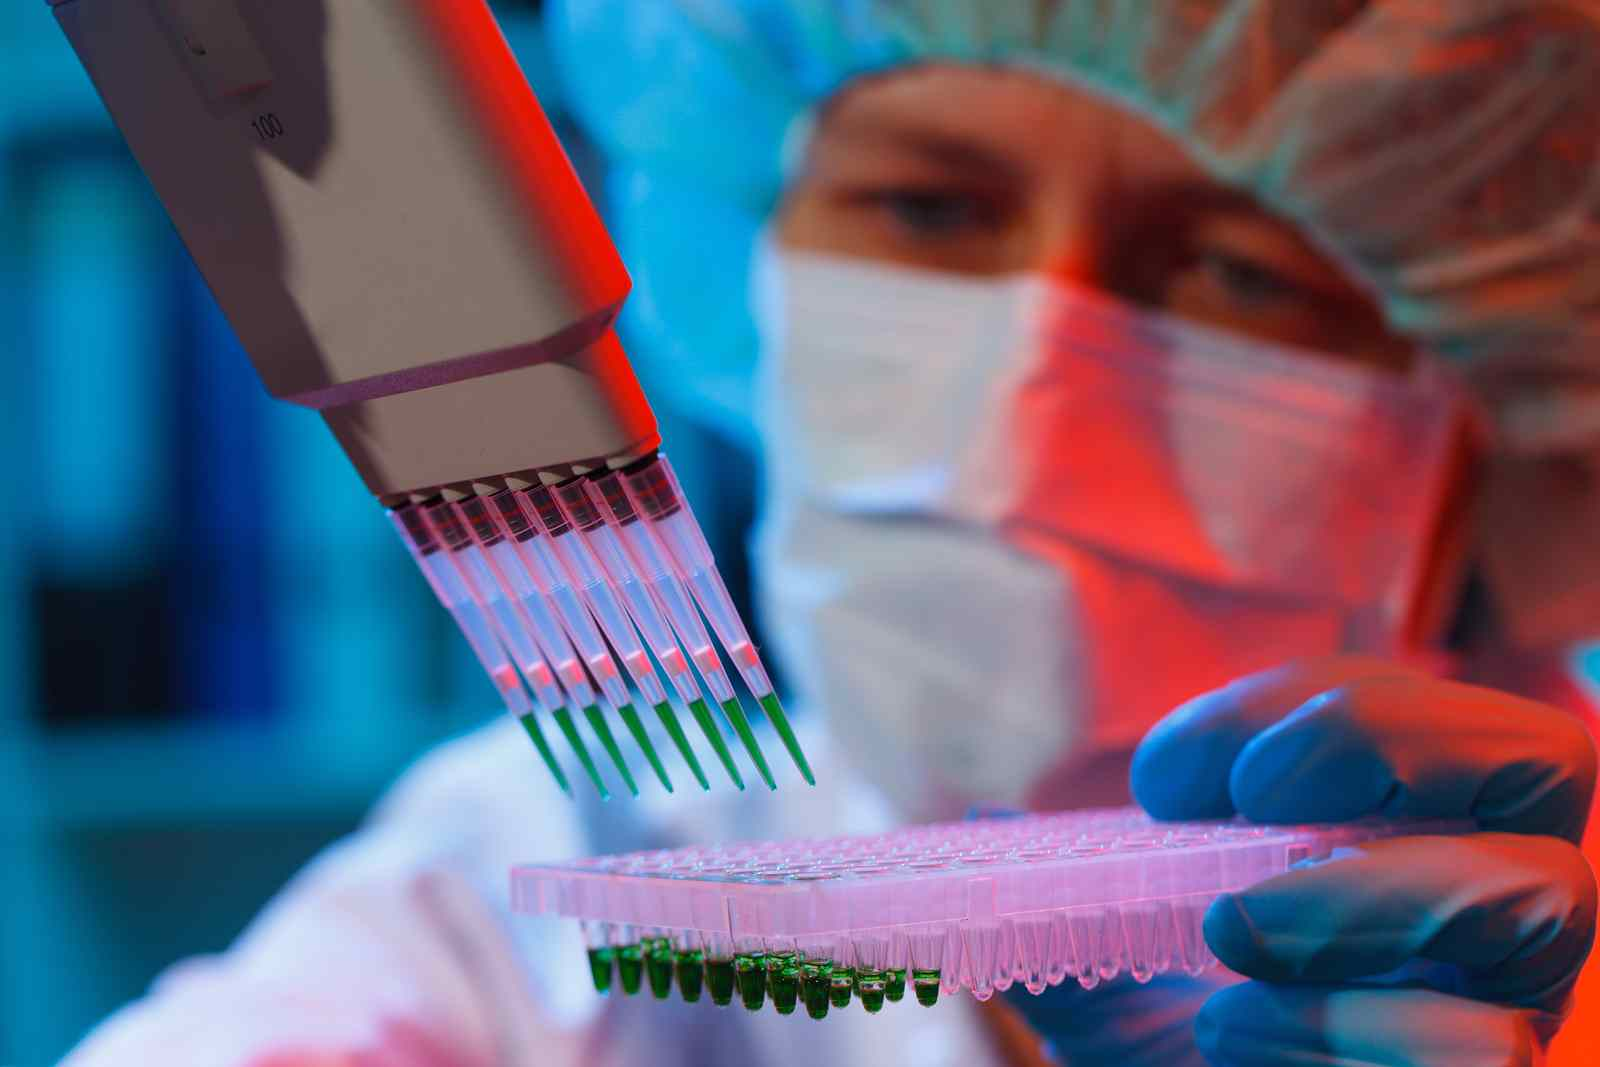 Asymmetrex Targets Applications to Enable Gene-Editing Therapies